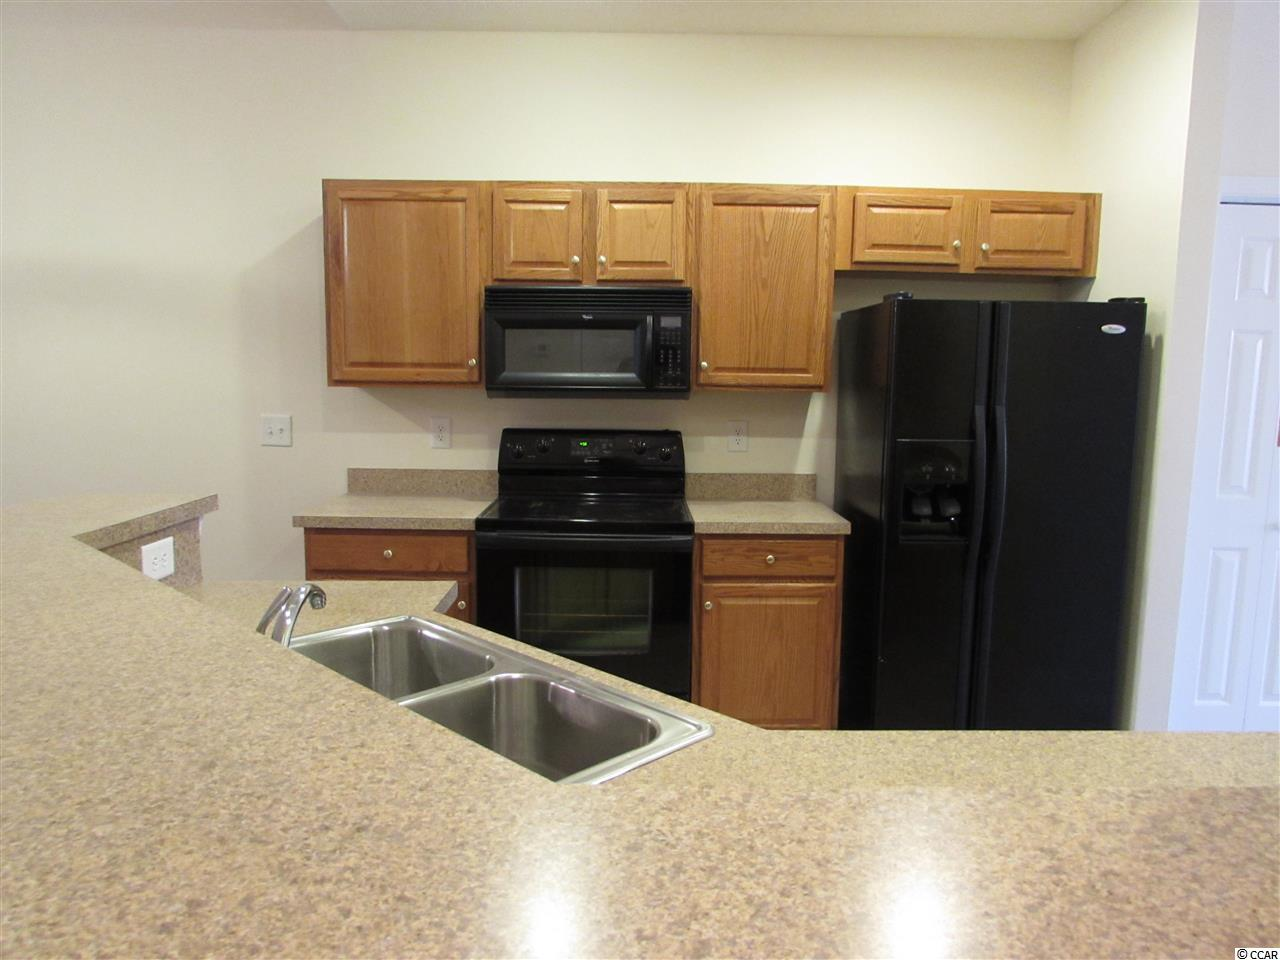 TANGLEWOOD AT BAREFOOT RESORT condo at 6095 Catalina Dr. for sale. 1708690